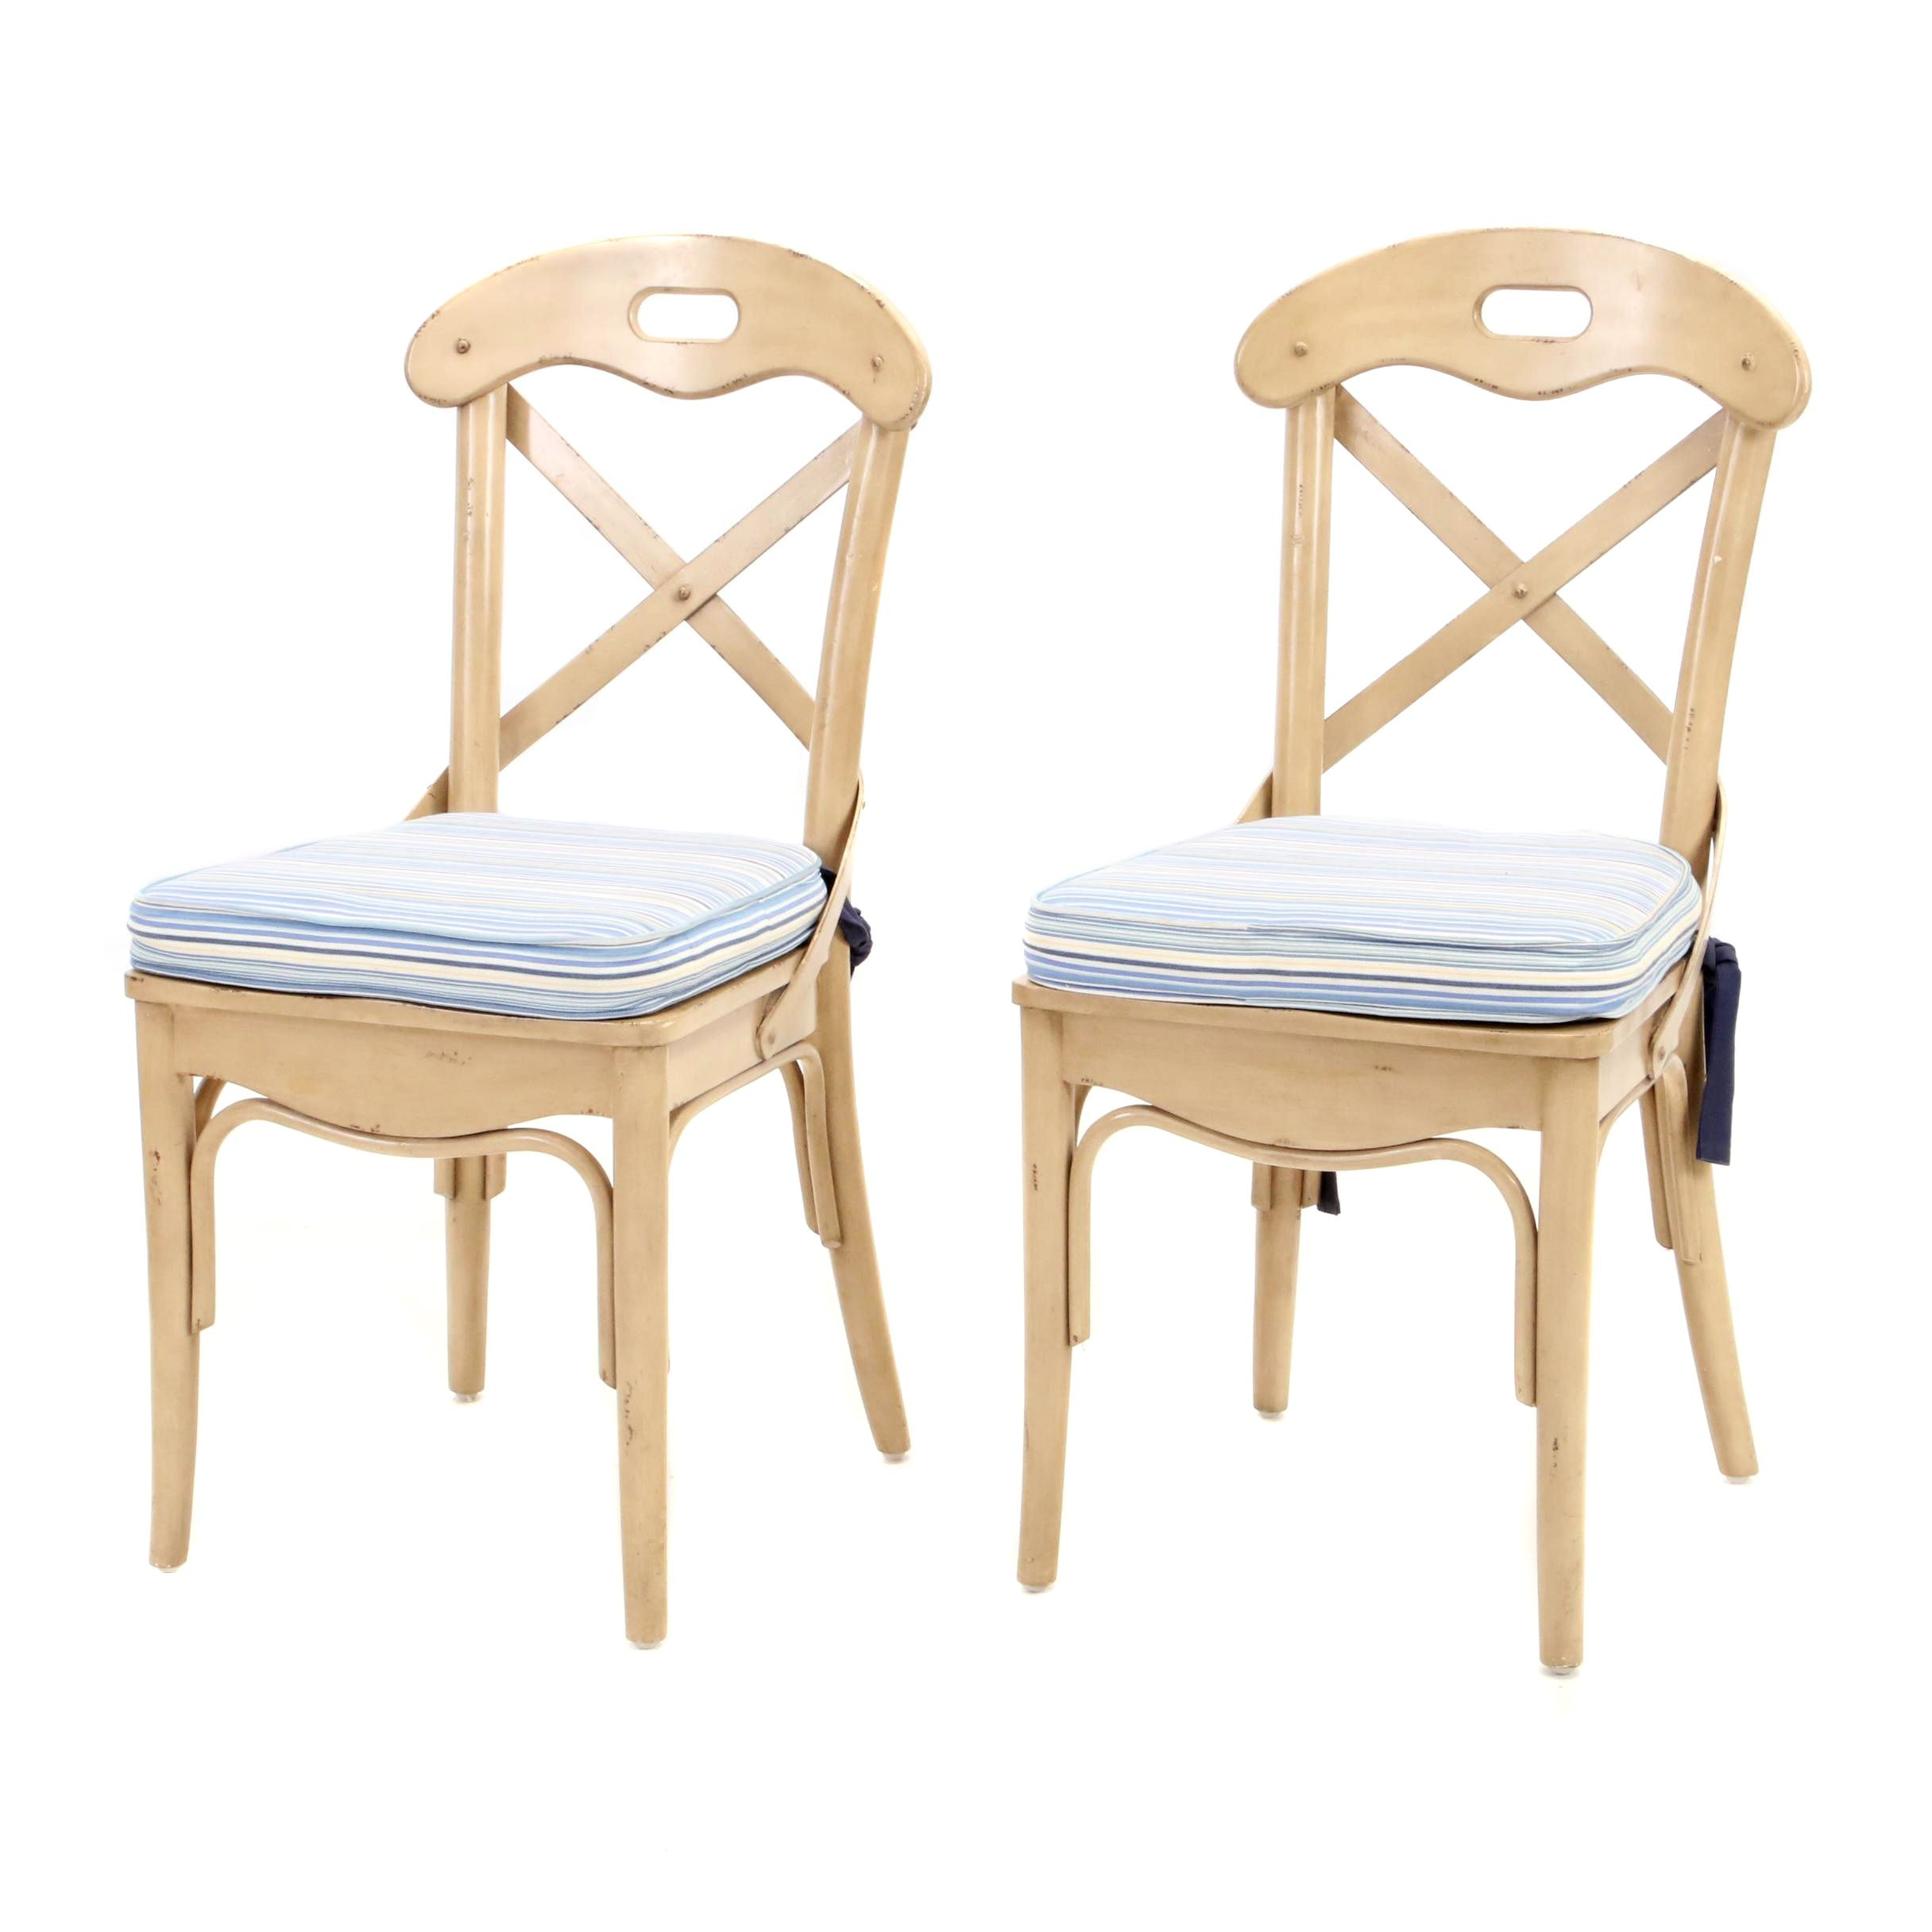 Painted Bent Wood Side Chairs with Seat Cushions